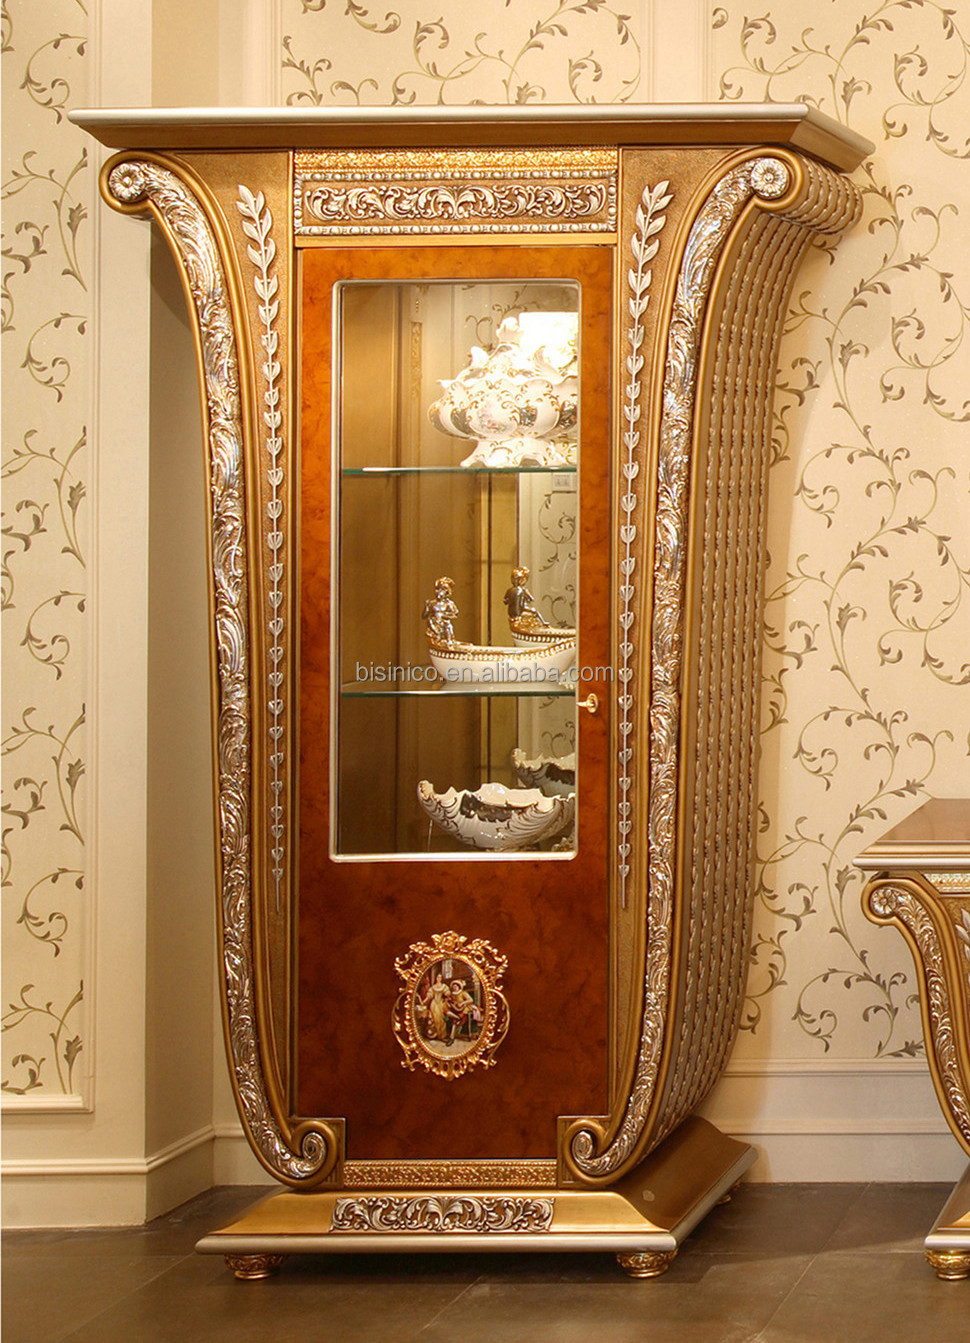 Luxury french baroque style golden four door glass display for Baroque glass door